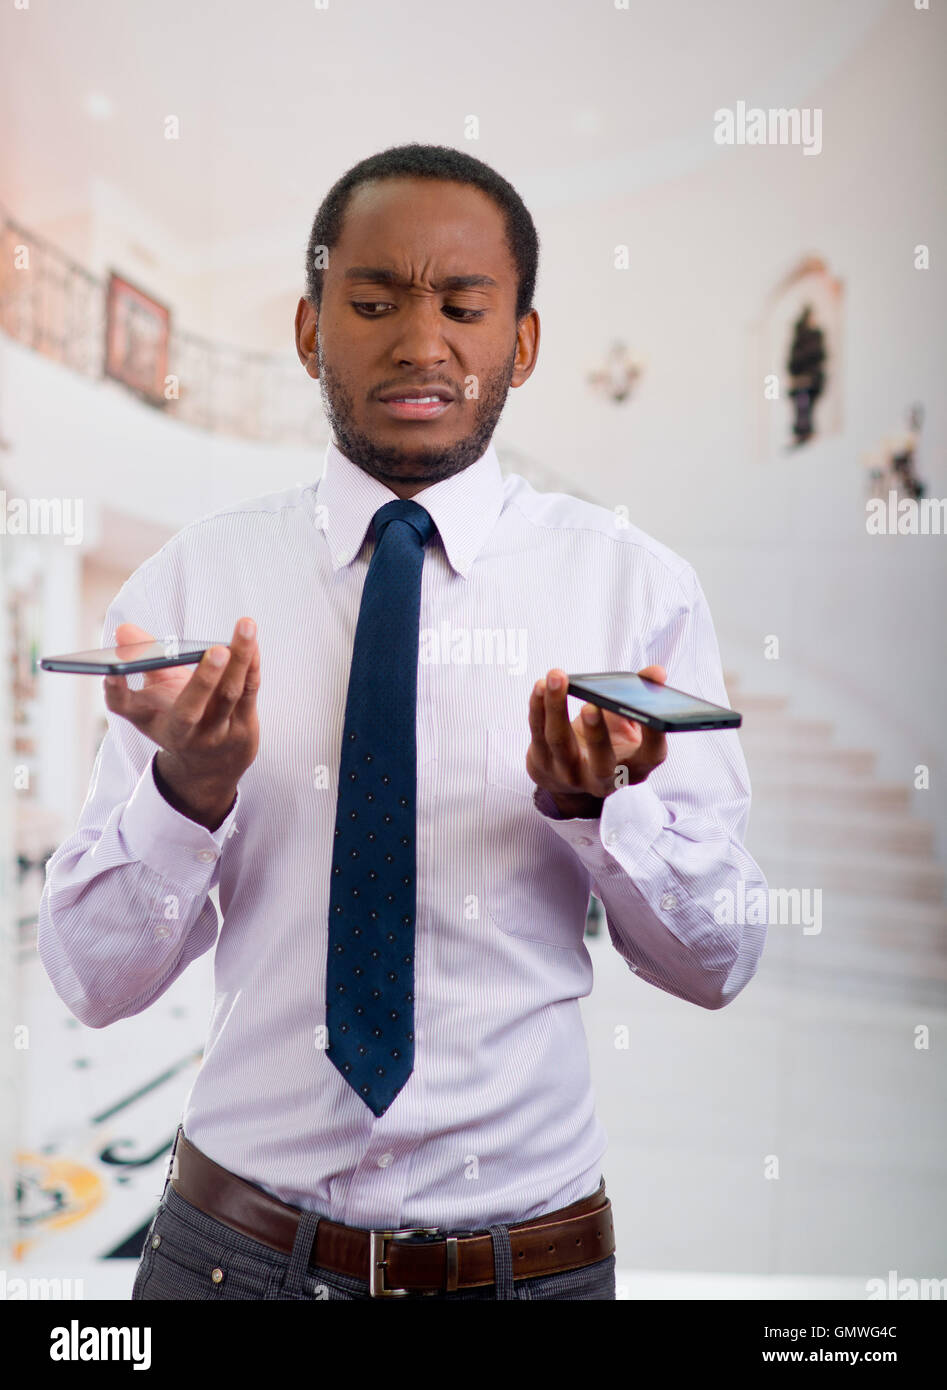 0c47d42cb5ec Handsome man wearing shirt and tie holding up two mobile phones with  stressed facial expression